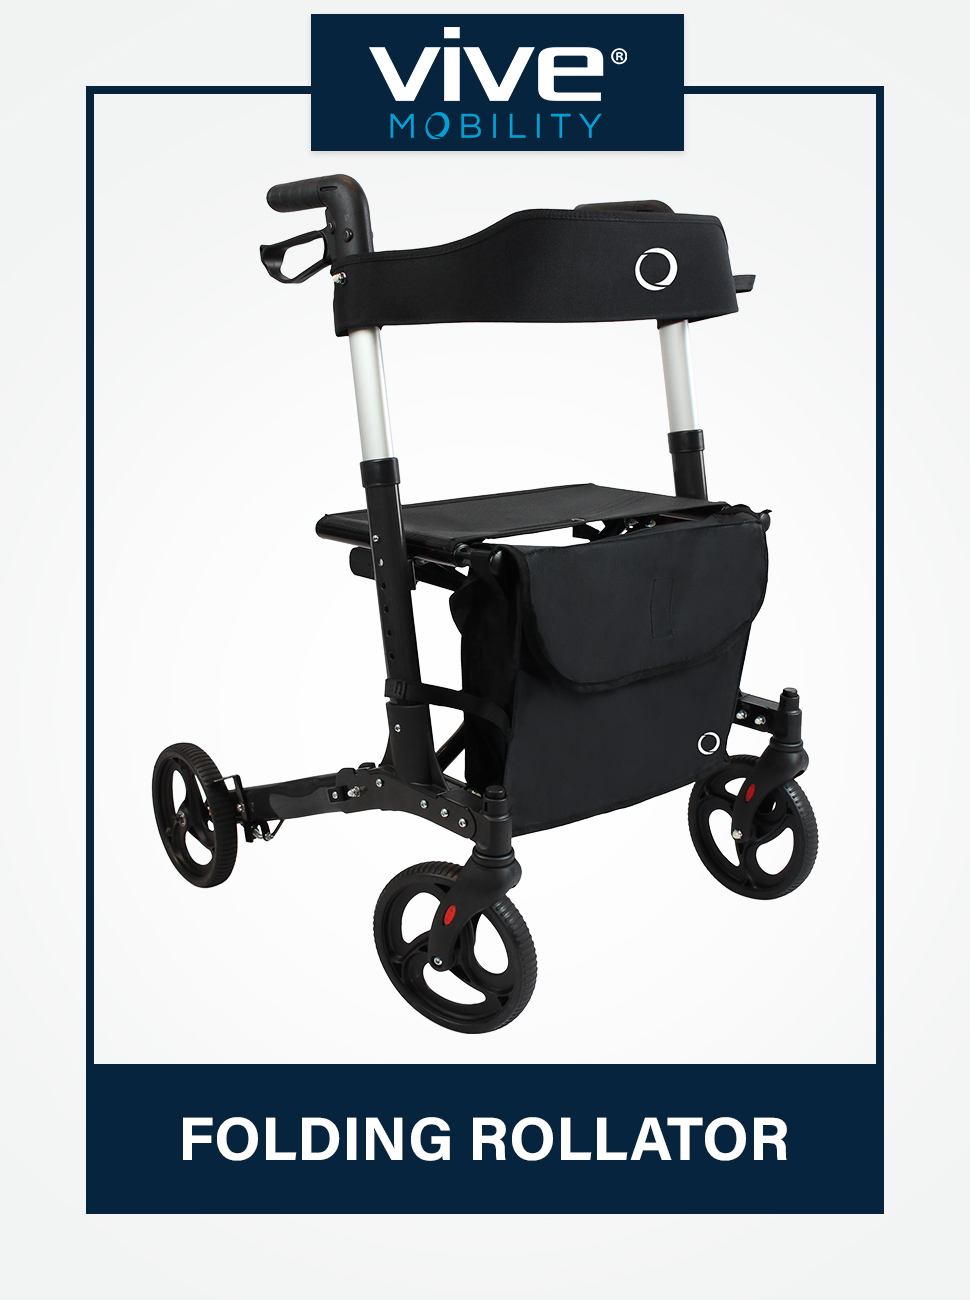 Vive Mobility Folding Rollator Walker 4 Wheel Medical Rolling Walker with Seat amp; Bag - Mobility Aid